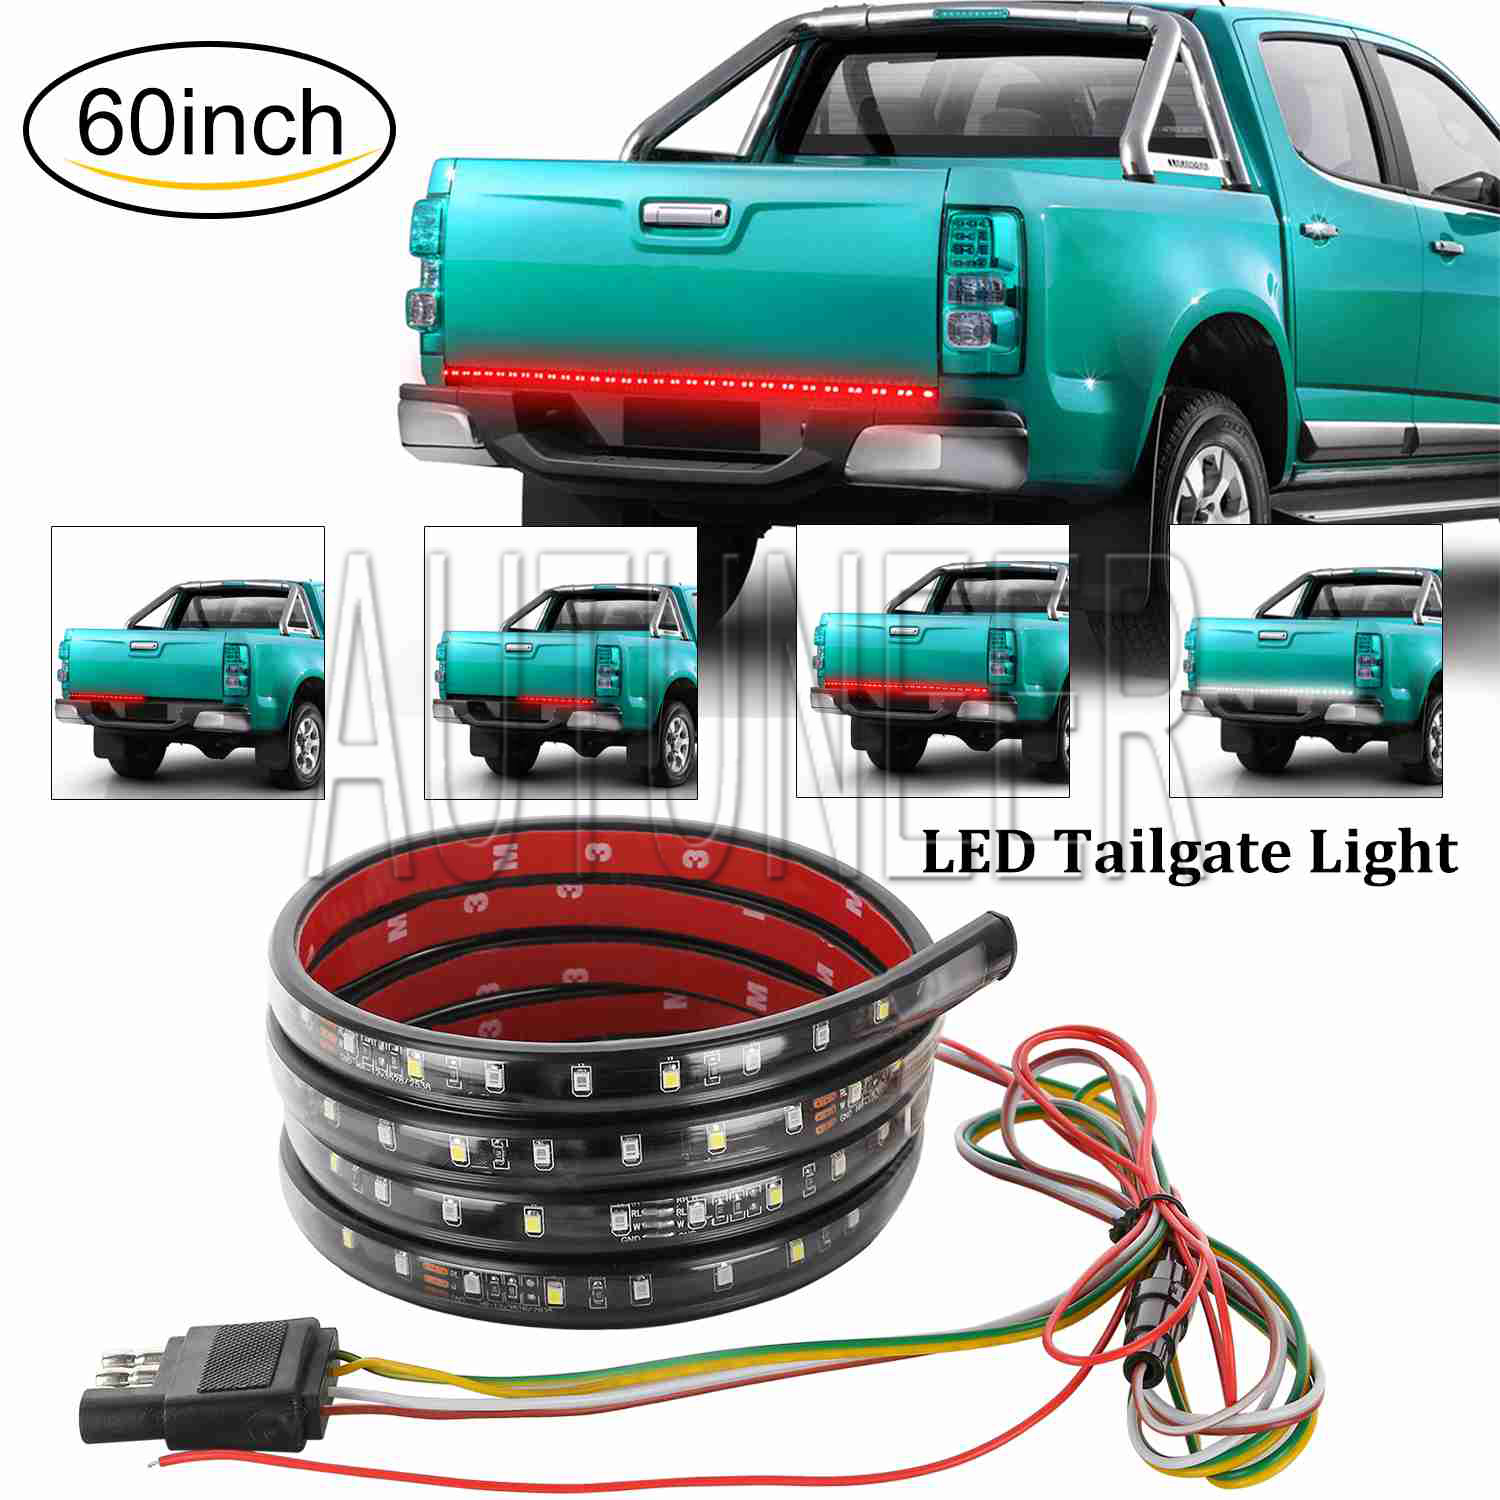 90leds Truck Led Tailgate Lights Reliable Supplier Of Auto Wiring Diagram For Light Bar